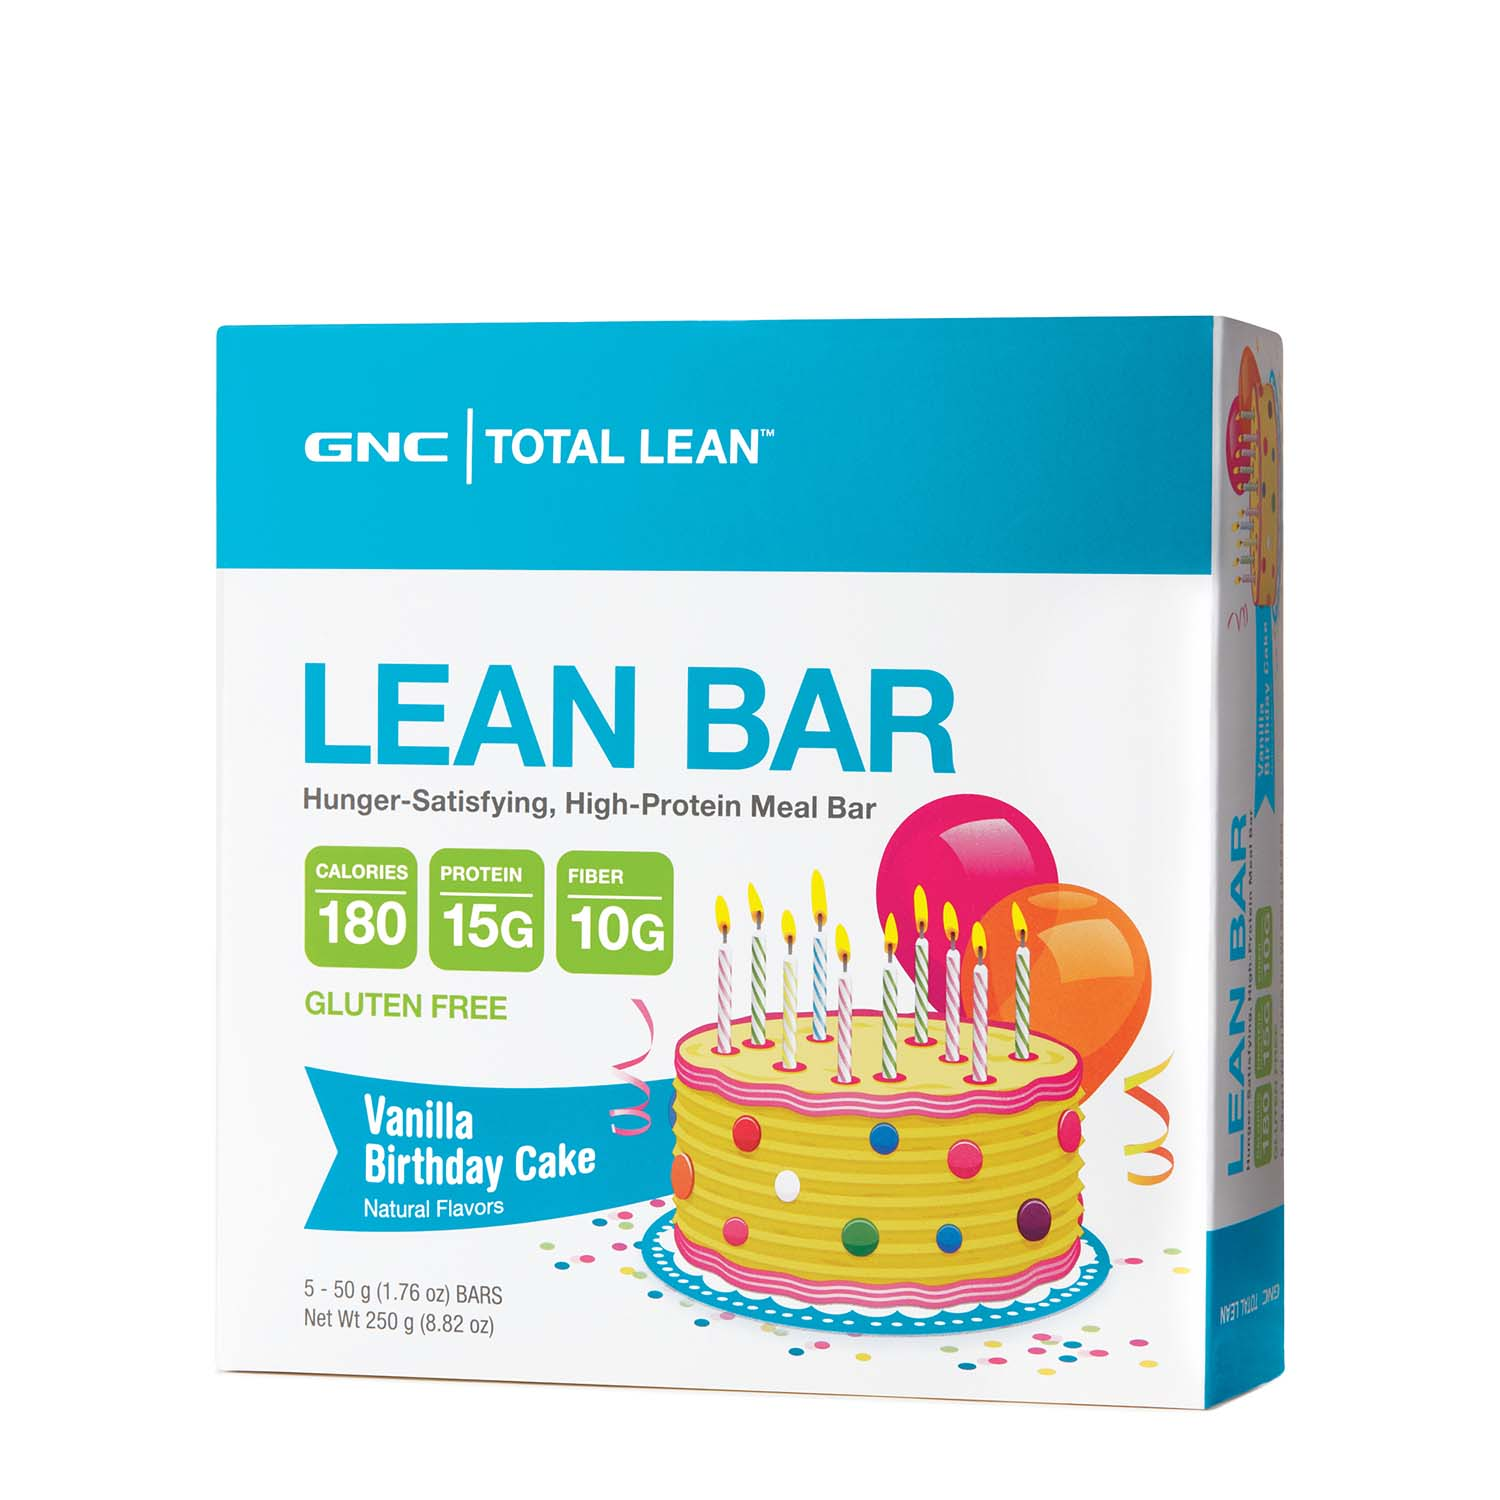 GNC Total LeanTM Lean Bar